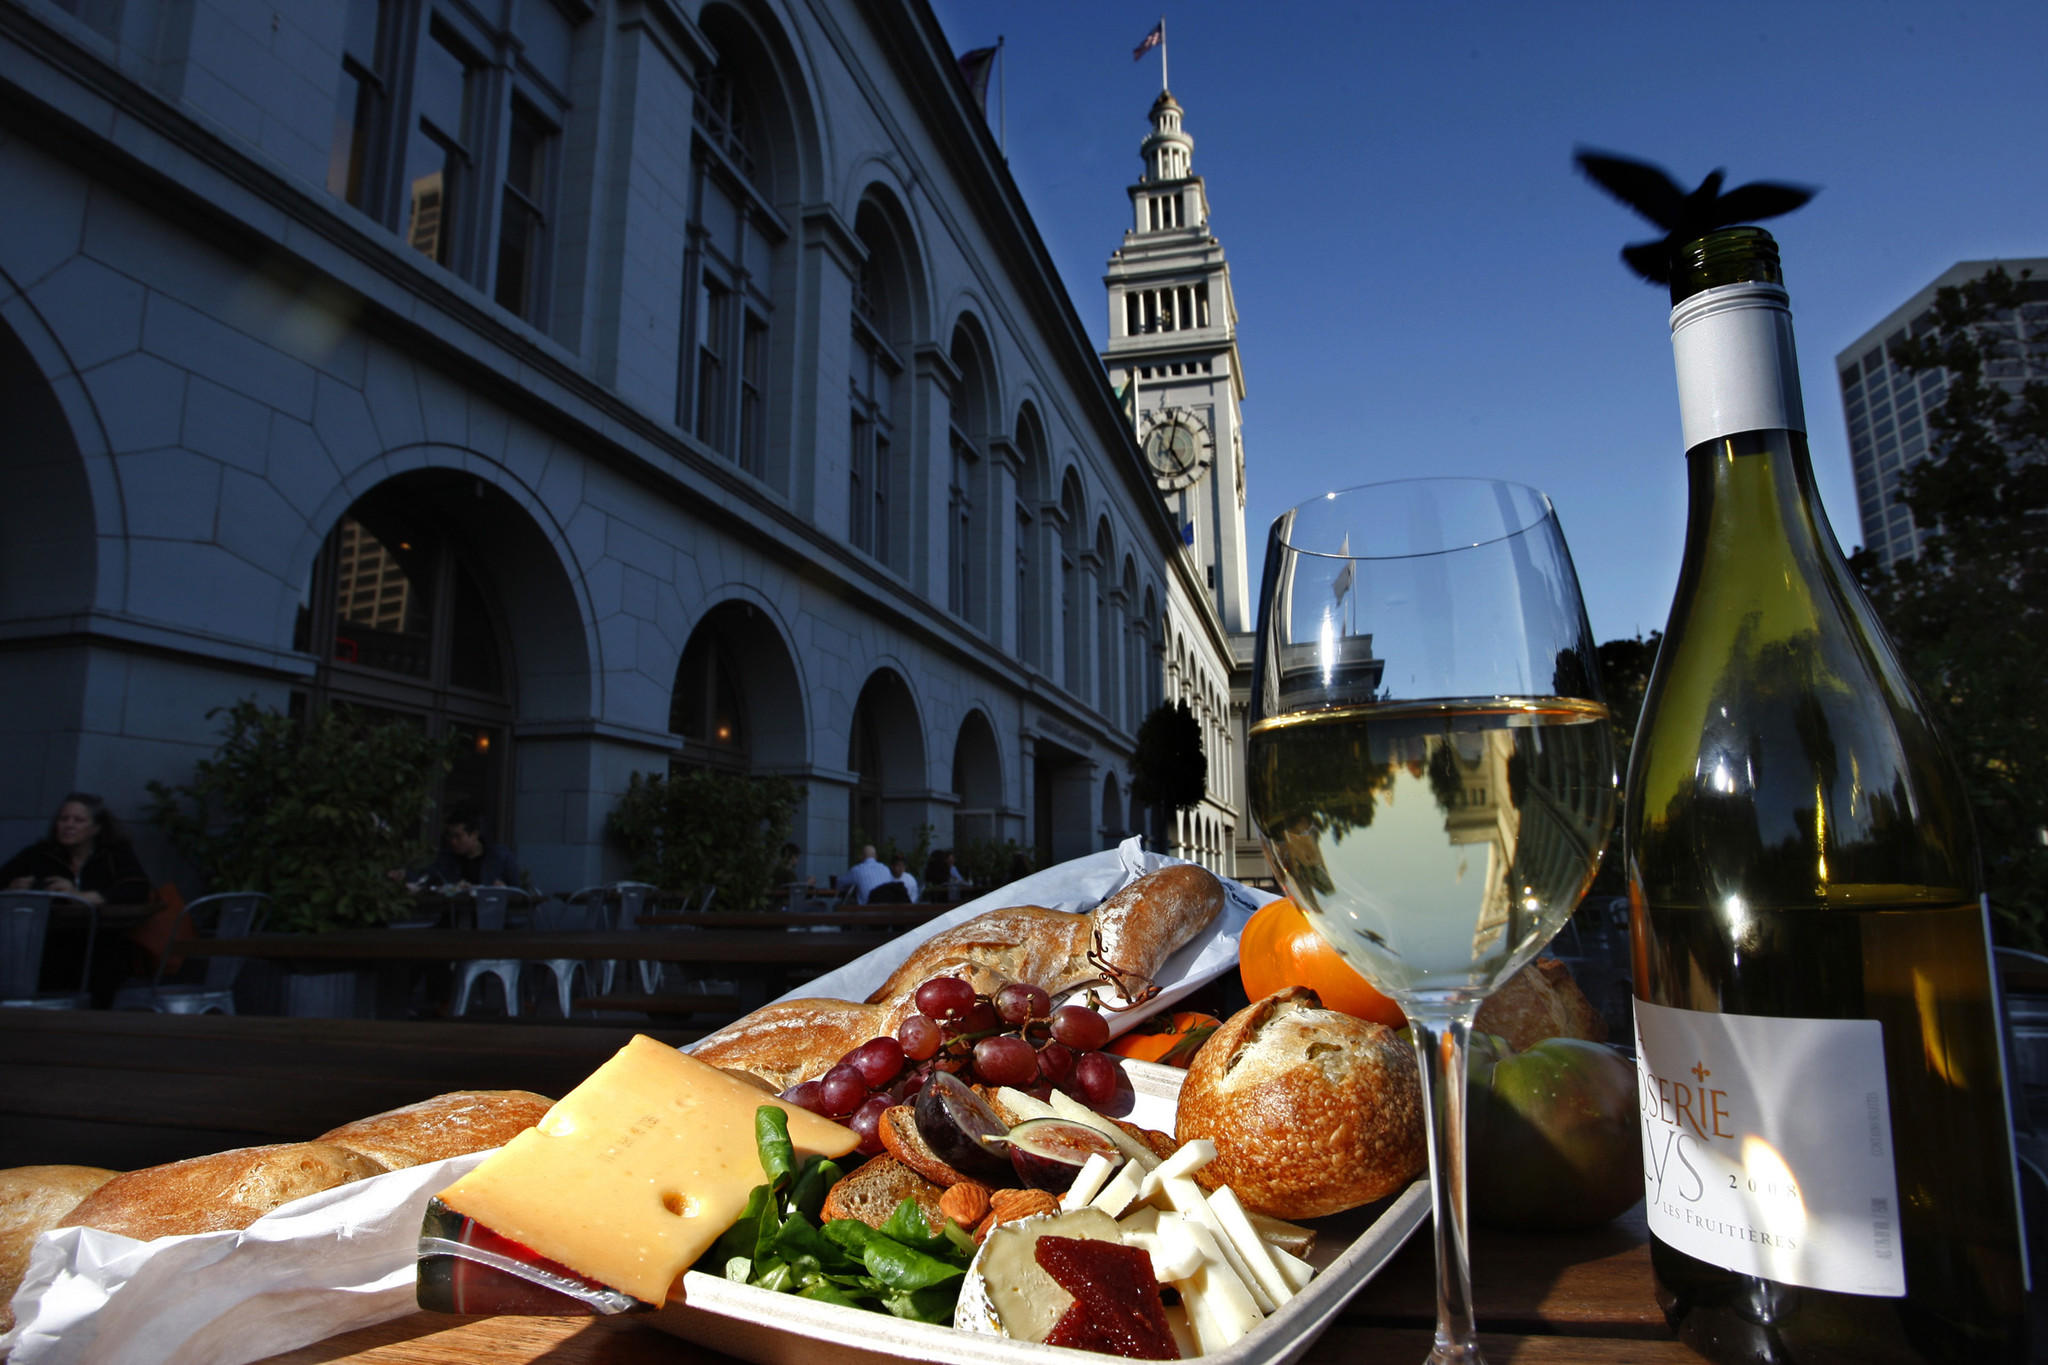 1. Ferry Building Marketplace